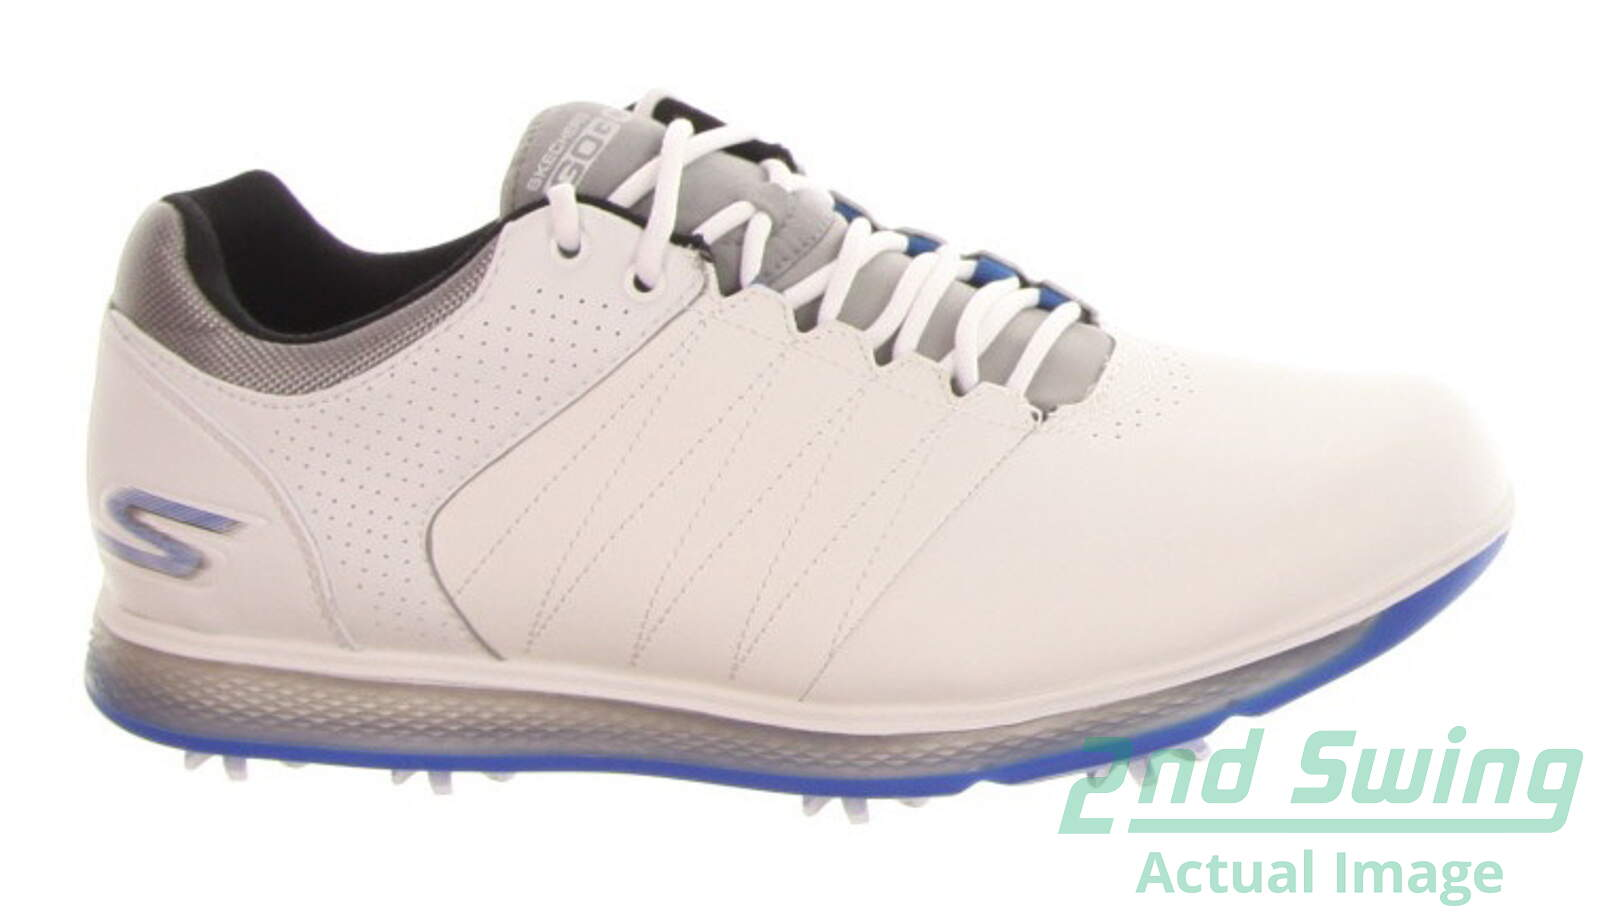 64290071a0f7 New Mens Golf Shoe Skechers Go Golf Pro 2 10 White MSRP  150 - Golf Footwear